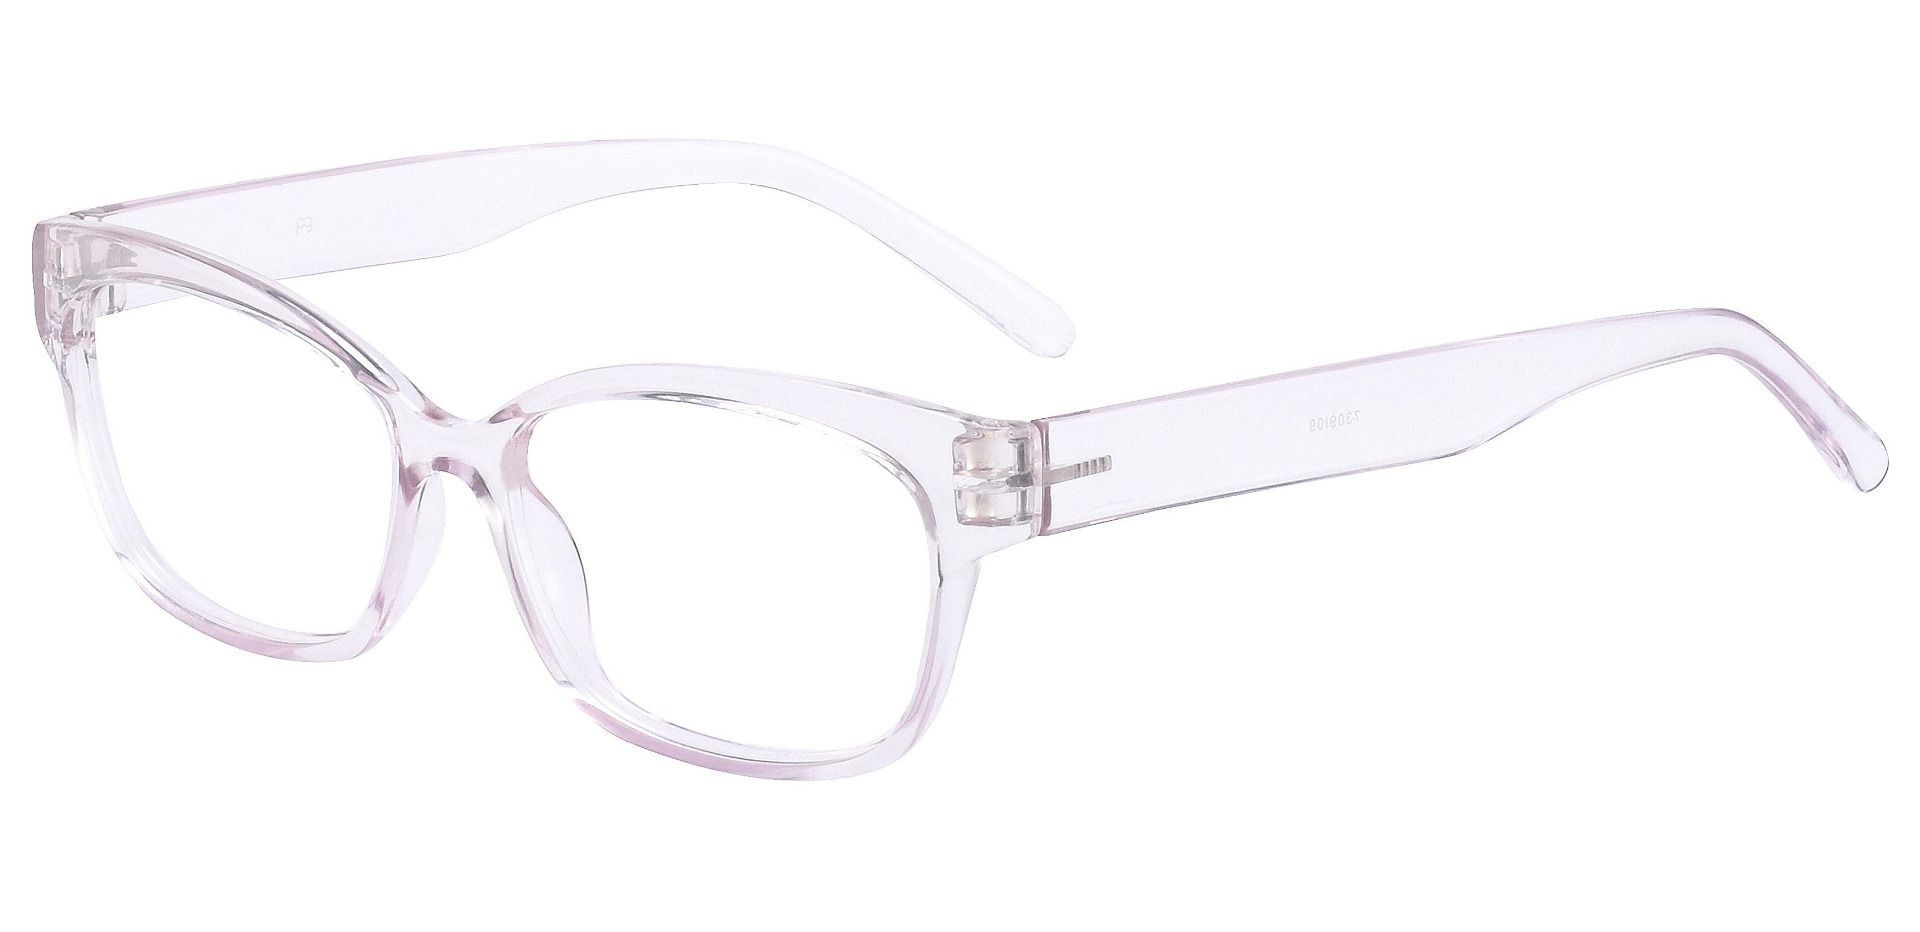 Adele Cat-Eye Prescription Glasses - Pink